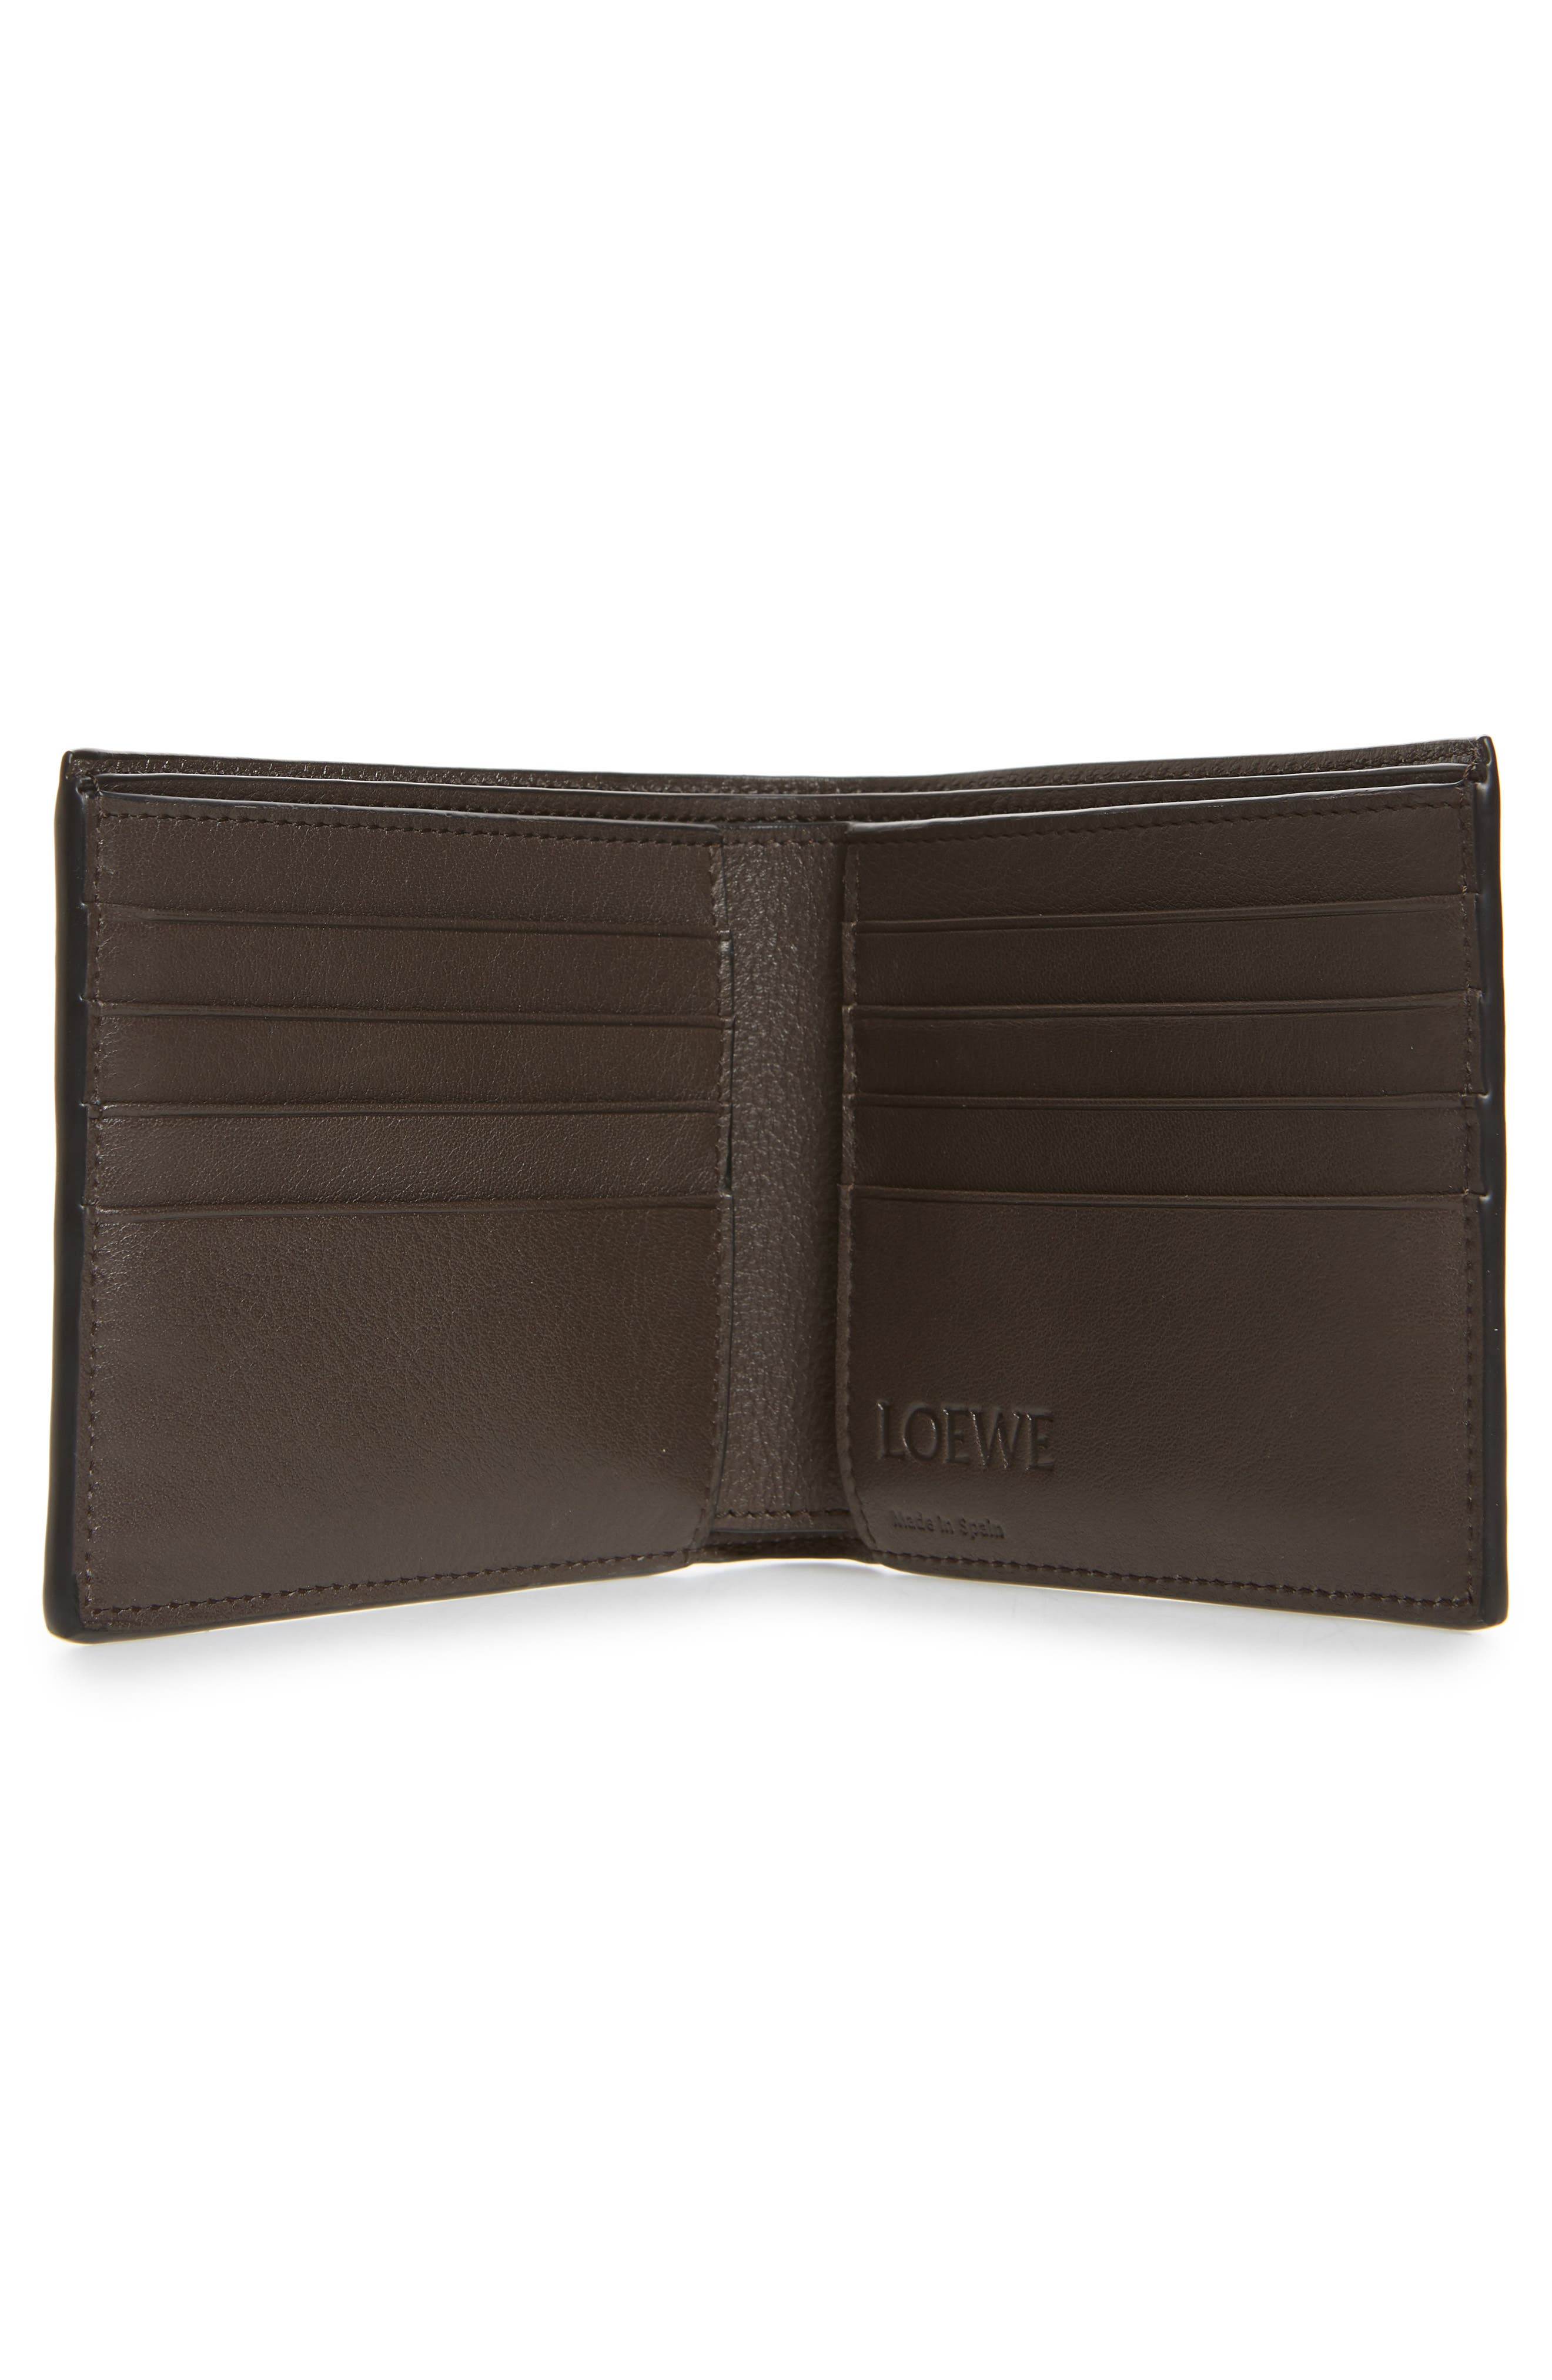 LOEWE, Calfskin Leather Bifold Wallet, Alternate thumbnail 2, color, MIDNIGHT